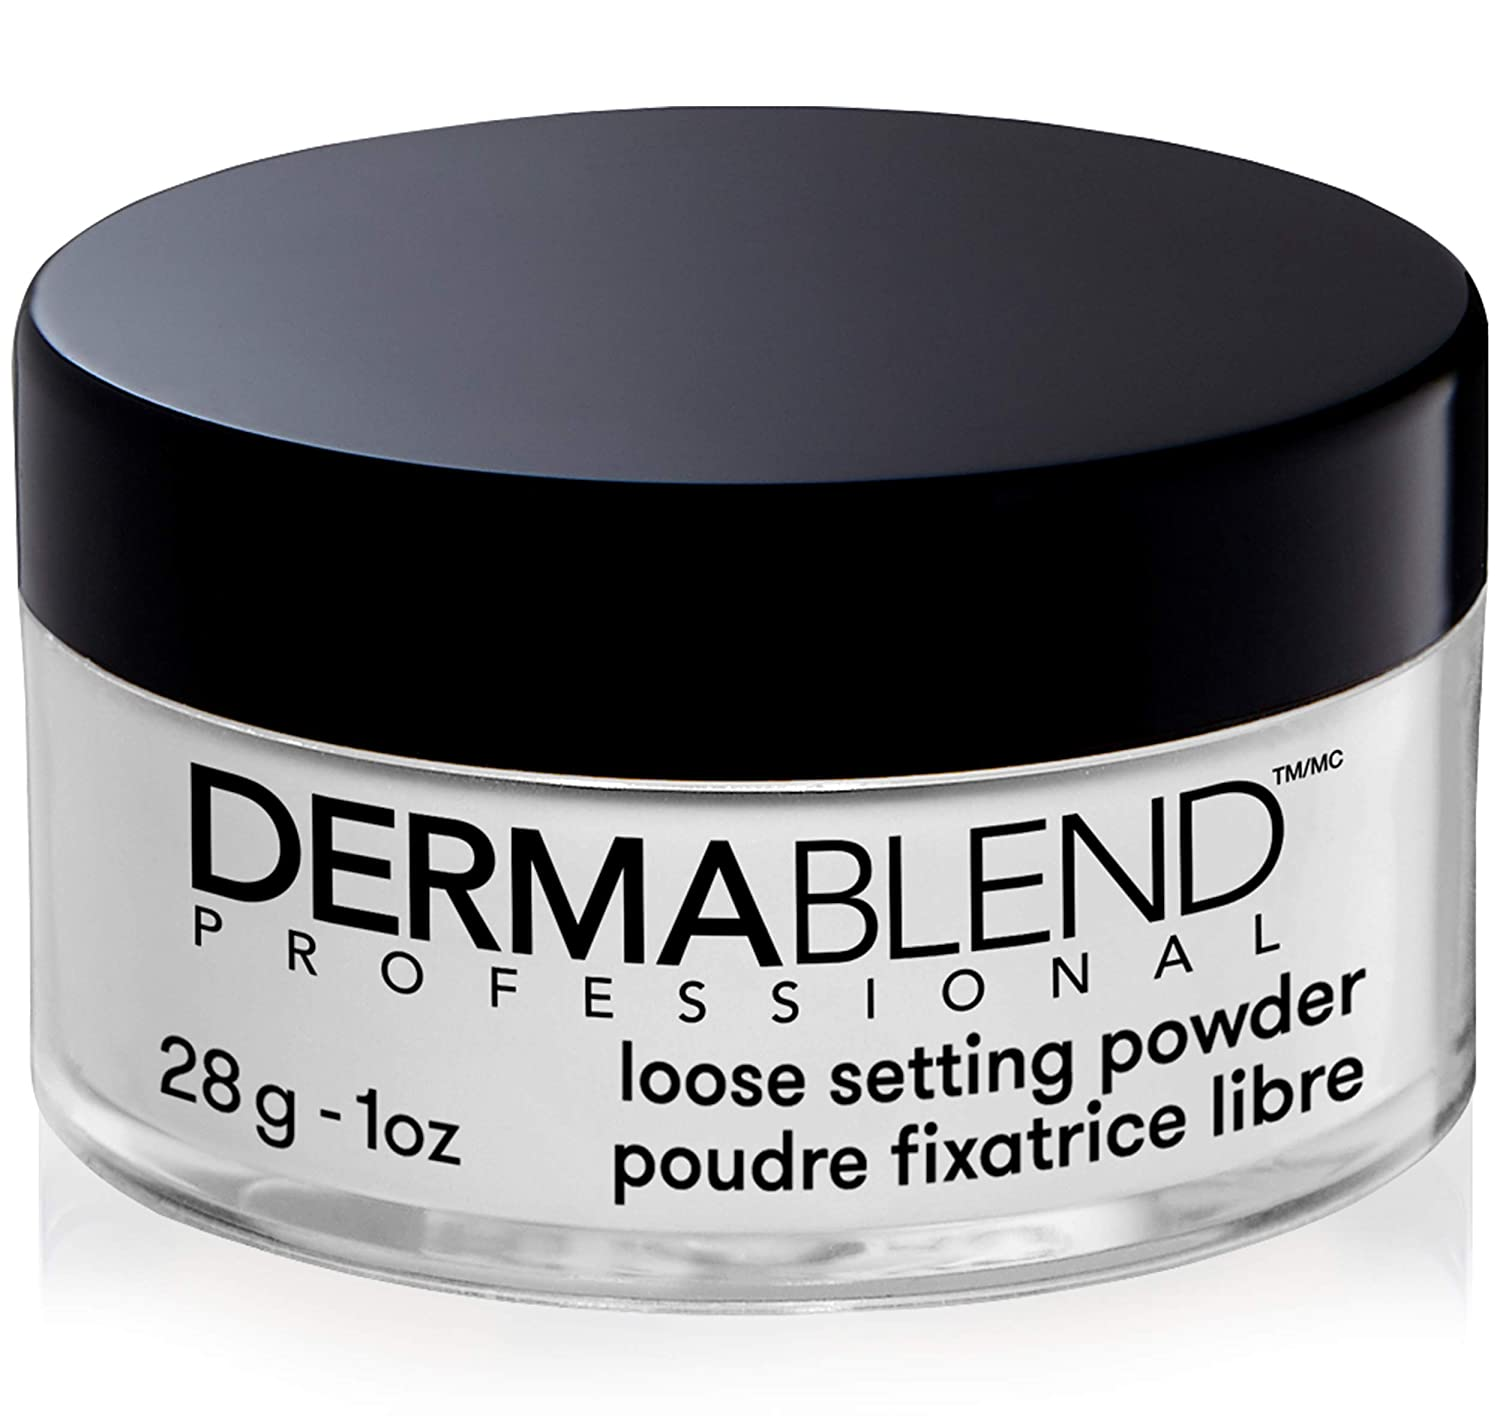 Dermablend Loose Setting Powder for dry skin